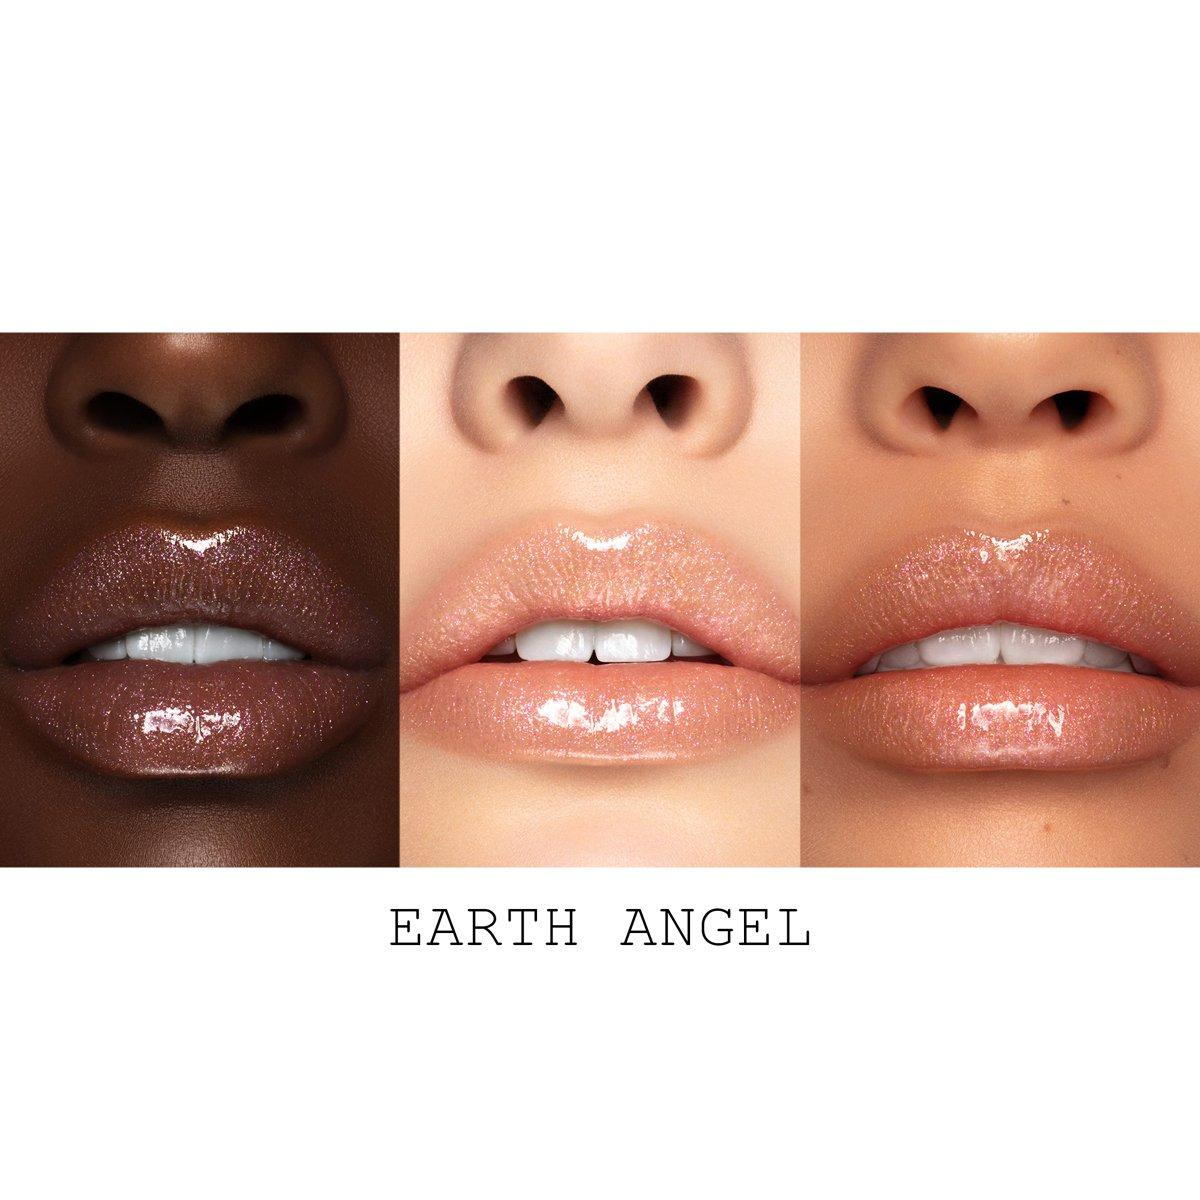 Pat McGrath Divine Blush Collection Lust Gloss™ in Earth Angel Lip Swatch